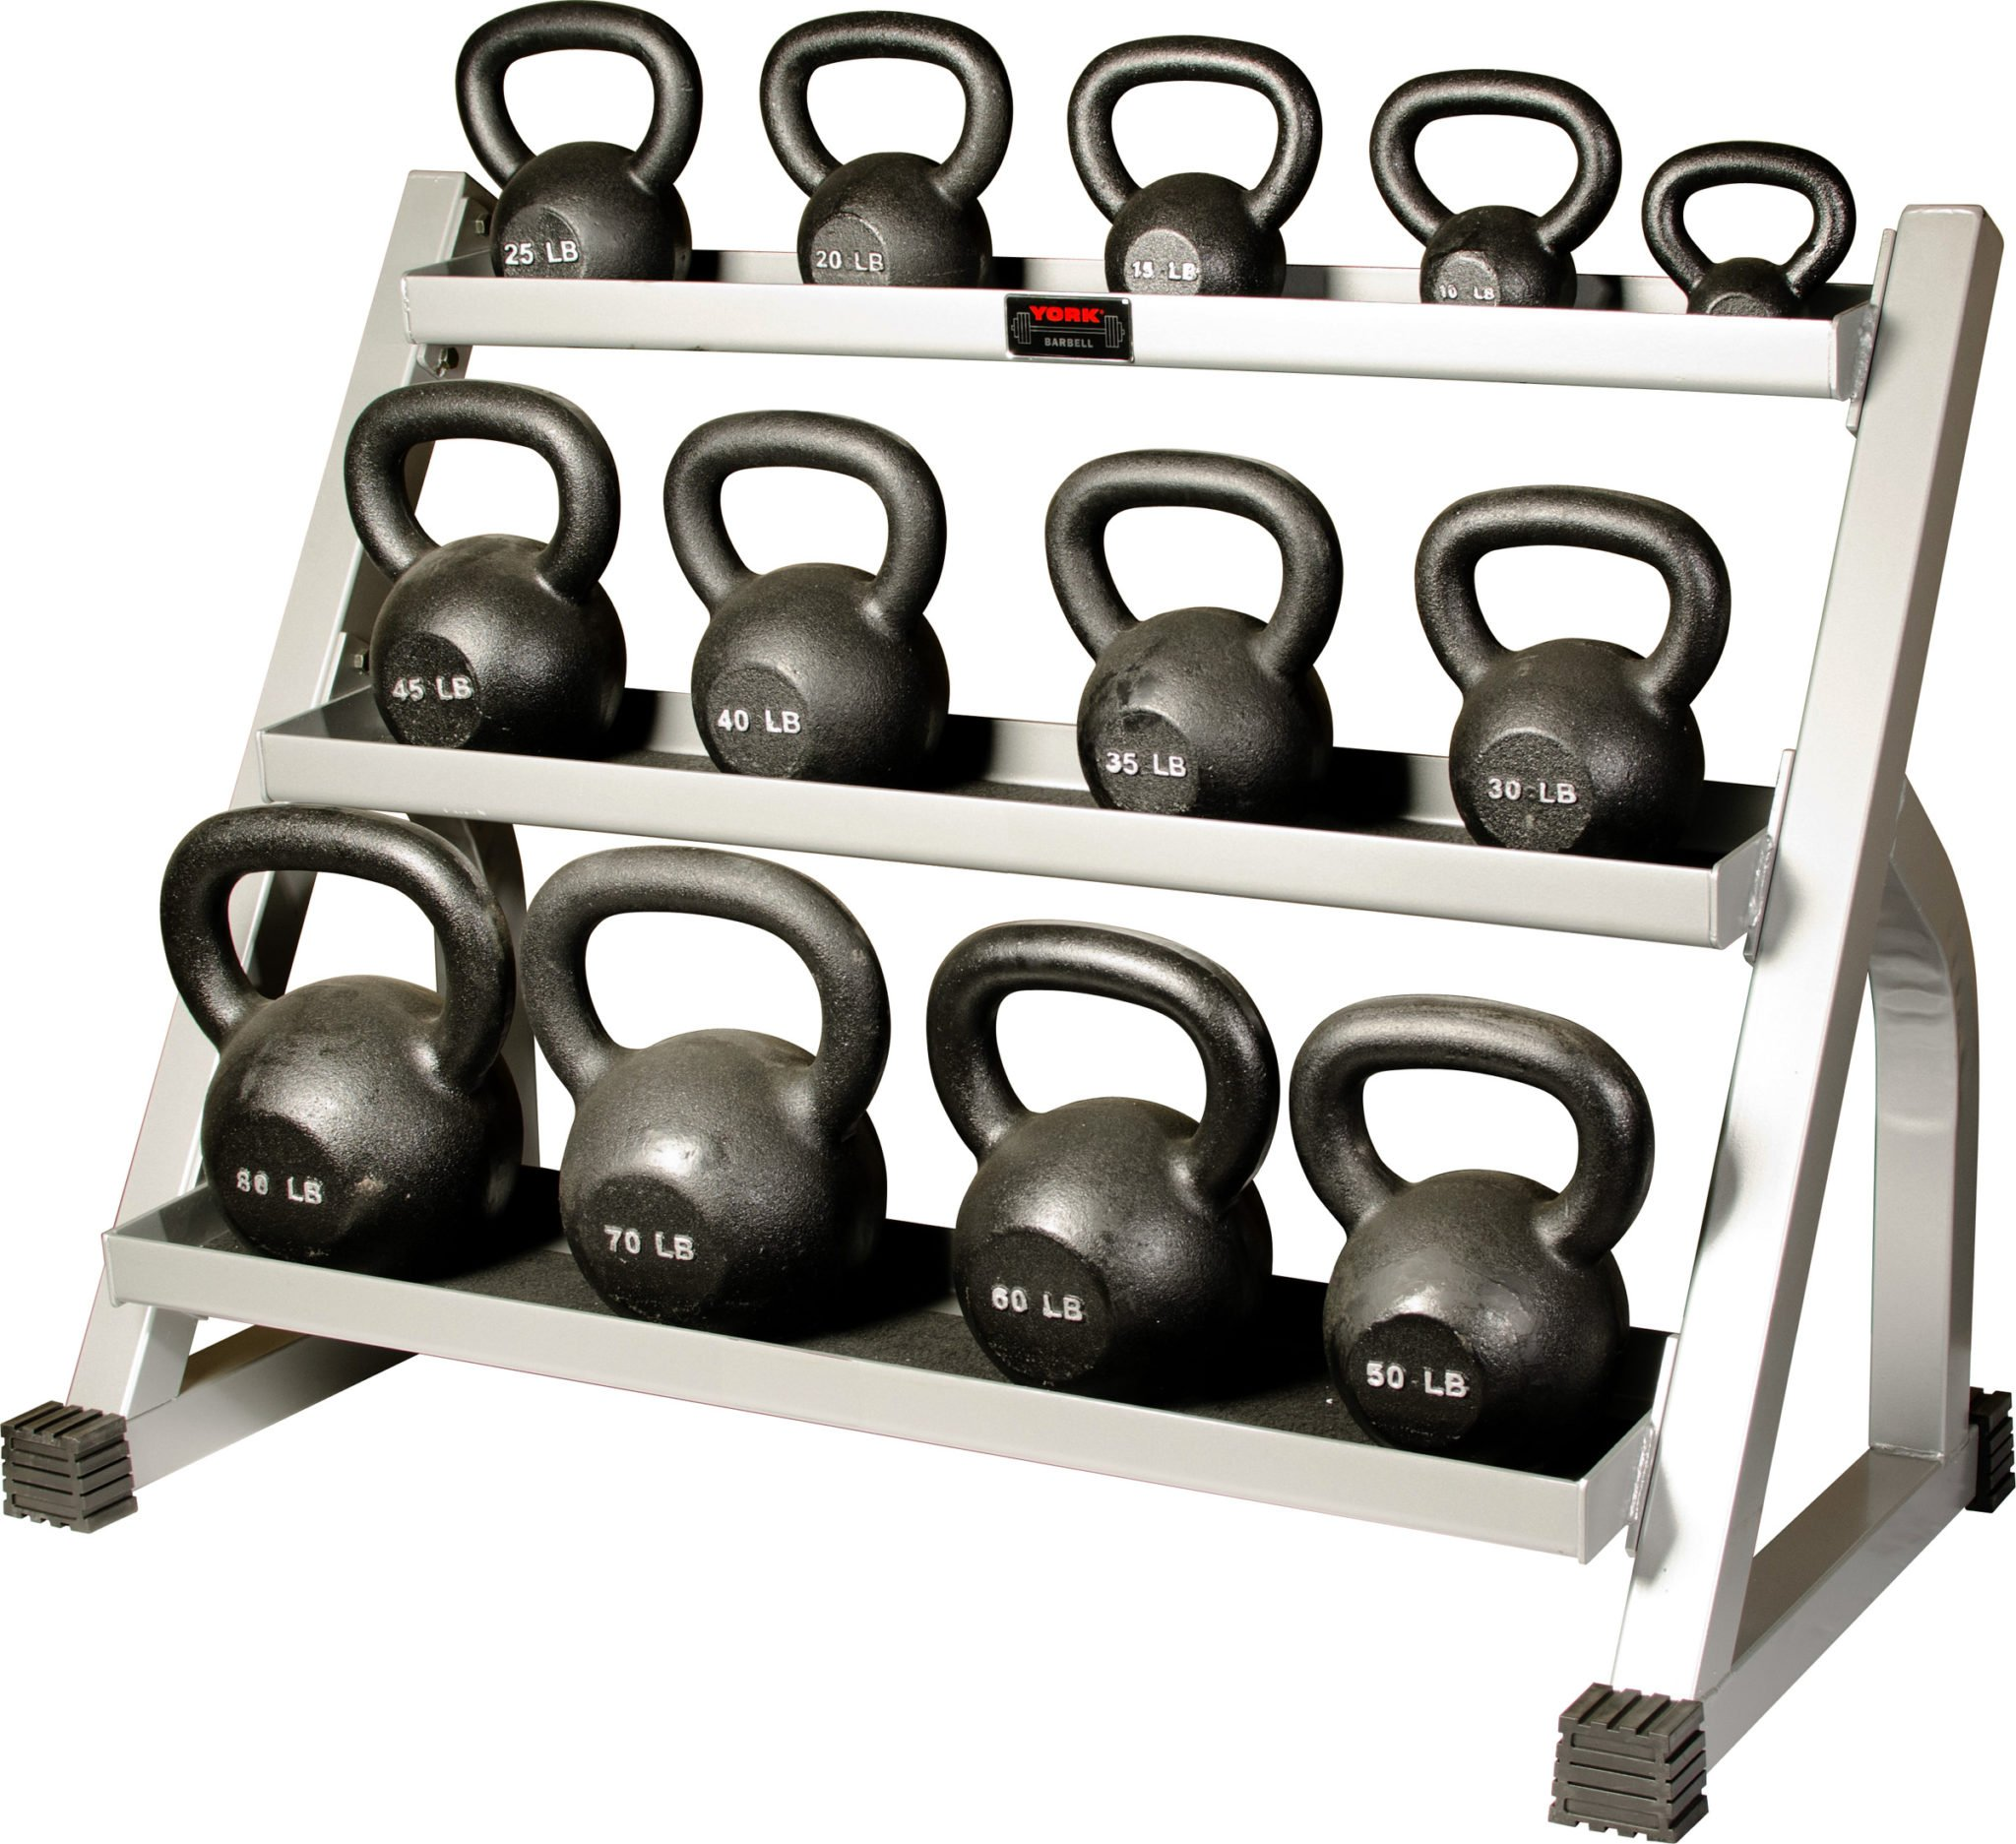 3 Tier Kettlebell Rack: Rae Crowther Co.Rae Crowther Co